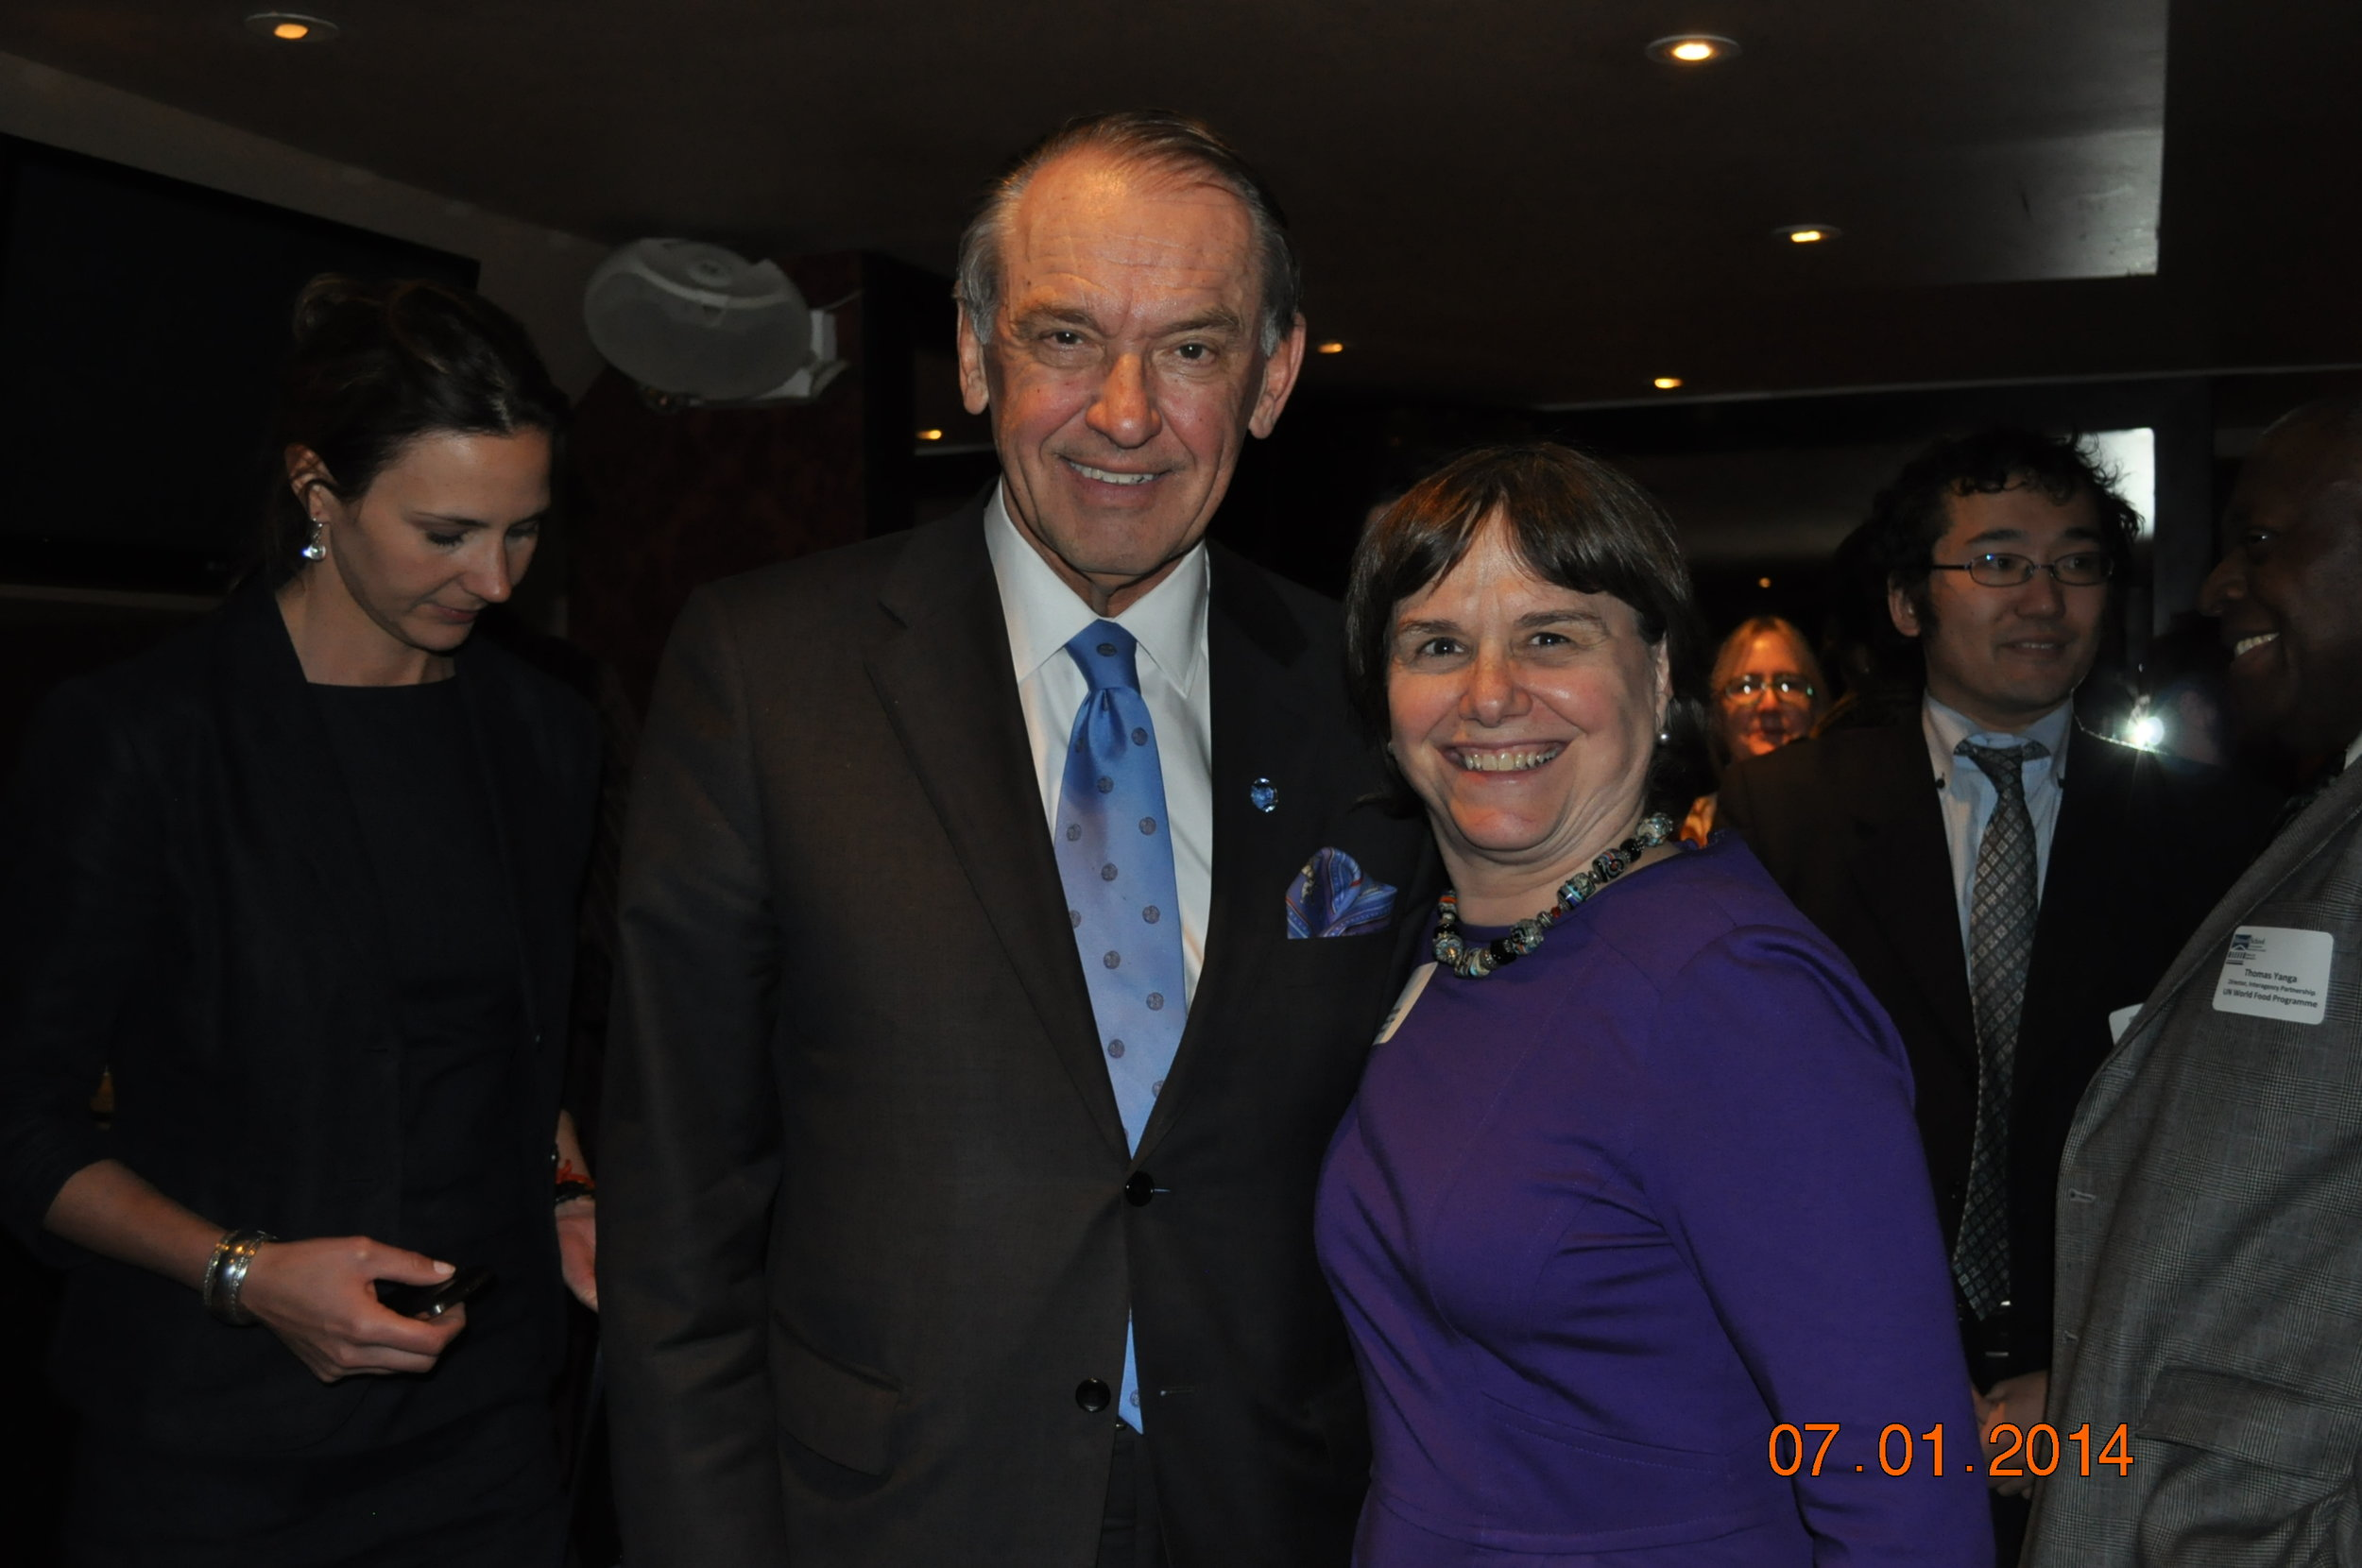 Maxwell UN Class in New York meeting with UN Deputy Secretary General Jan Eliasson (2014)